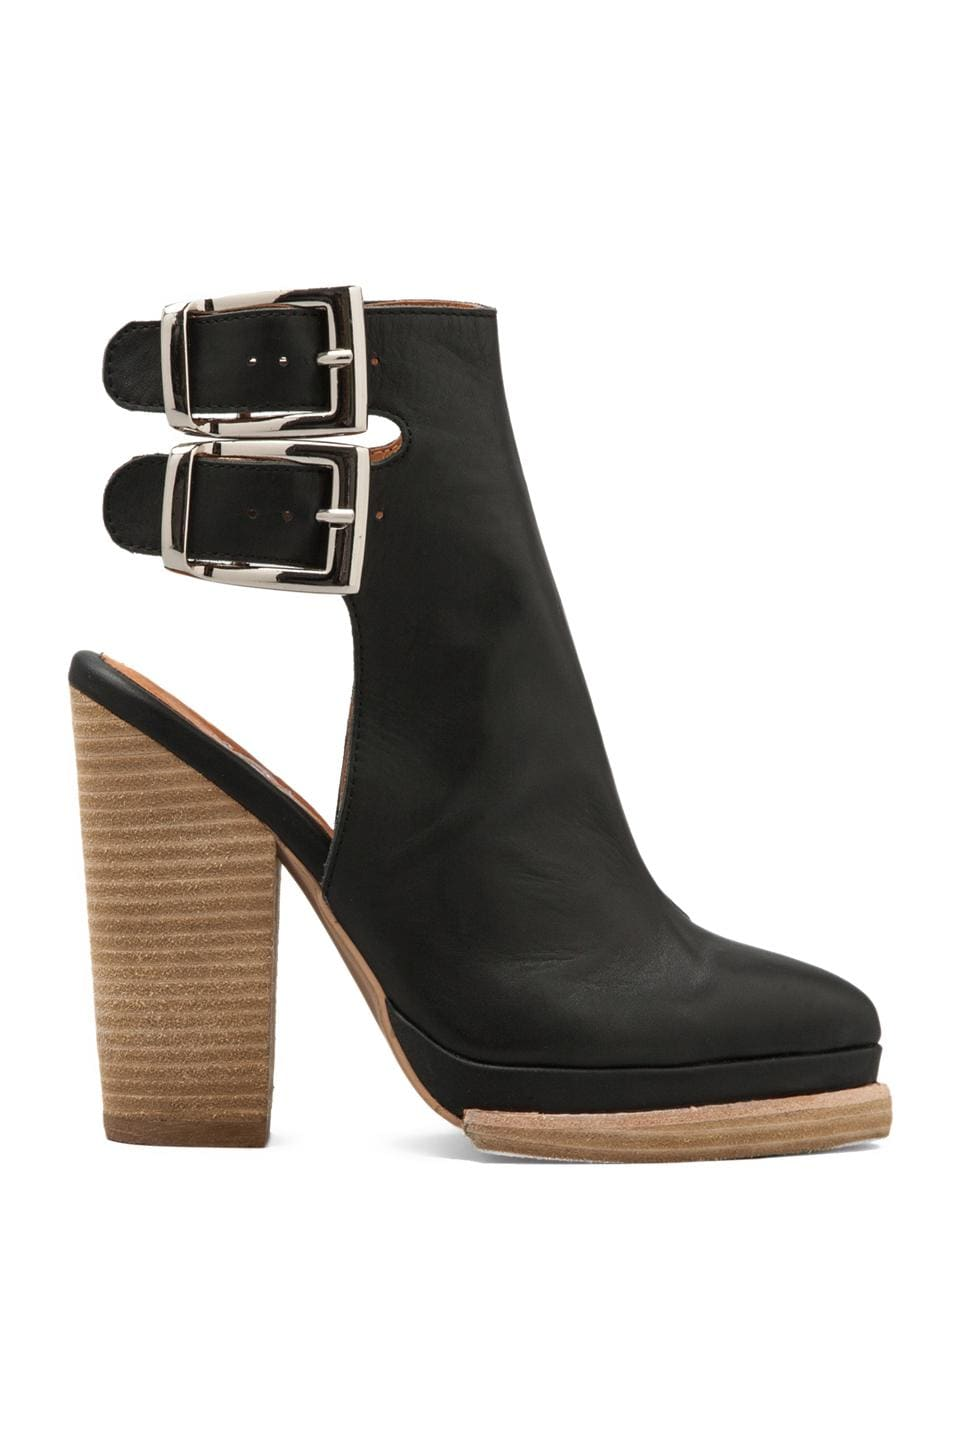 Jeffrey Campbell National-H in Black Leather